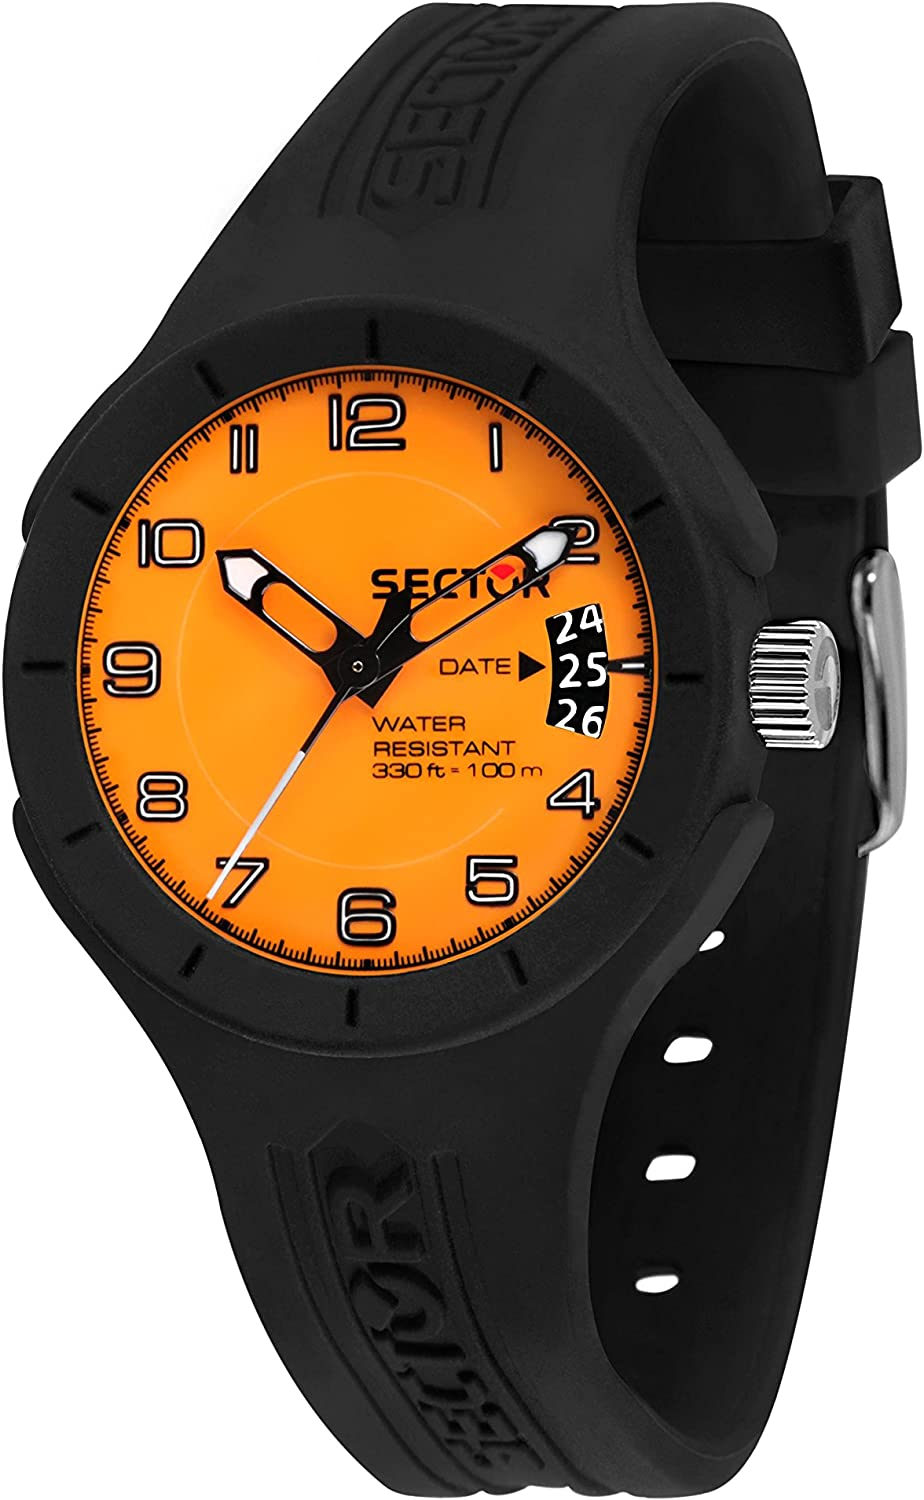 Sector No Limits Men s Speed Analog-Quartz Sport Watch with Silicone Strap, Black, 18 Model R3251514010